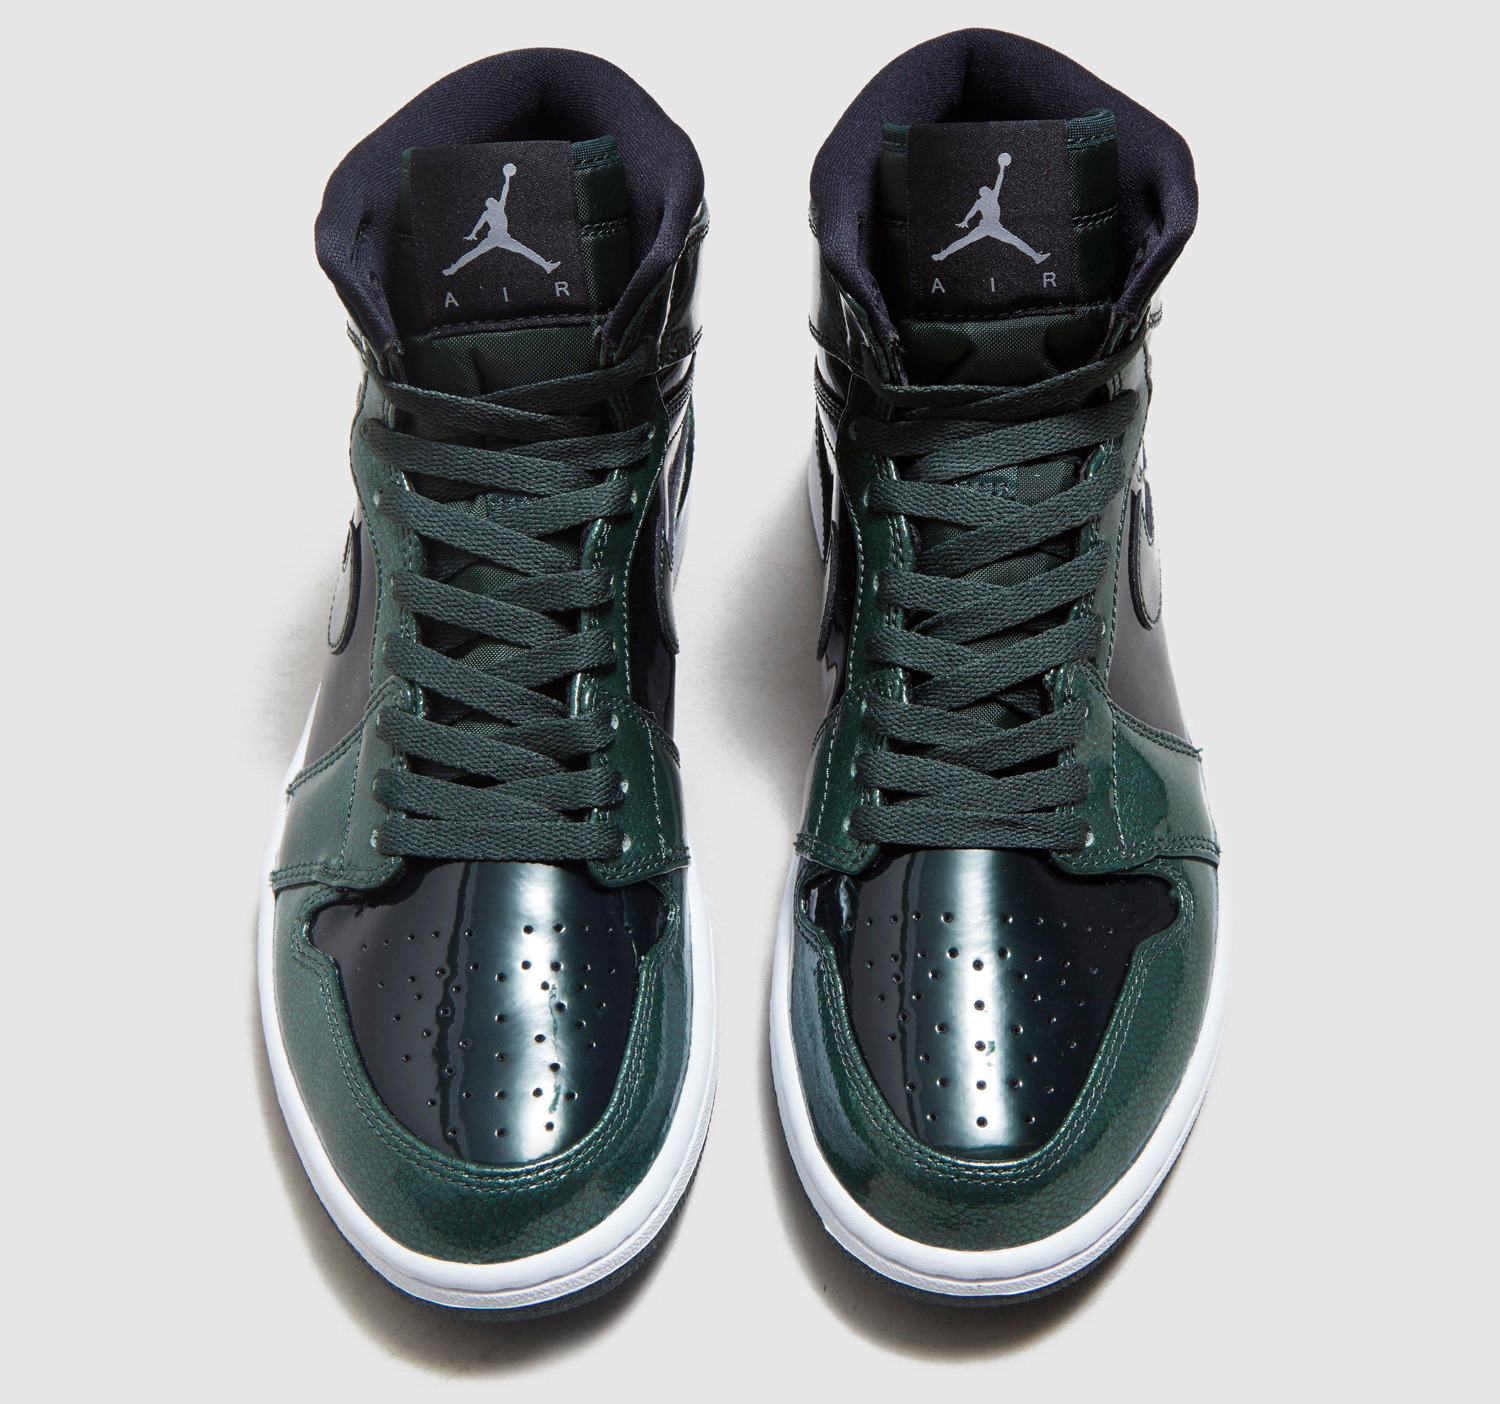 quality design a2f00 aac5a Air Jordan 1 Gorge Green Patent Leather 332550-300 Top